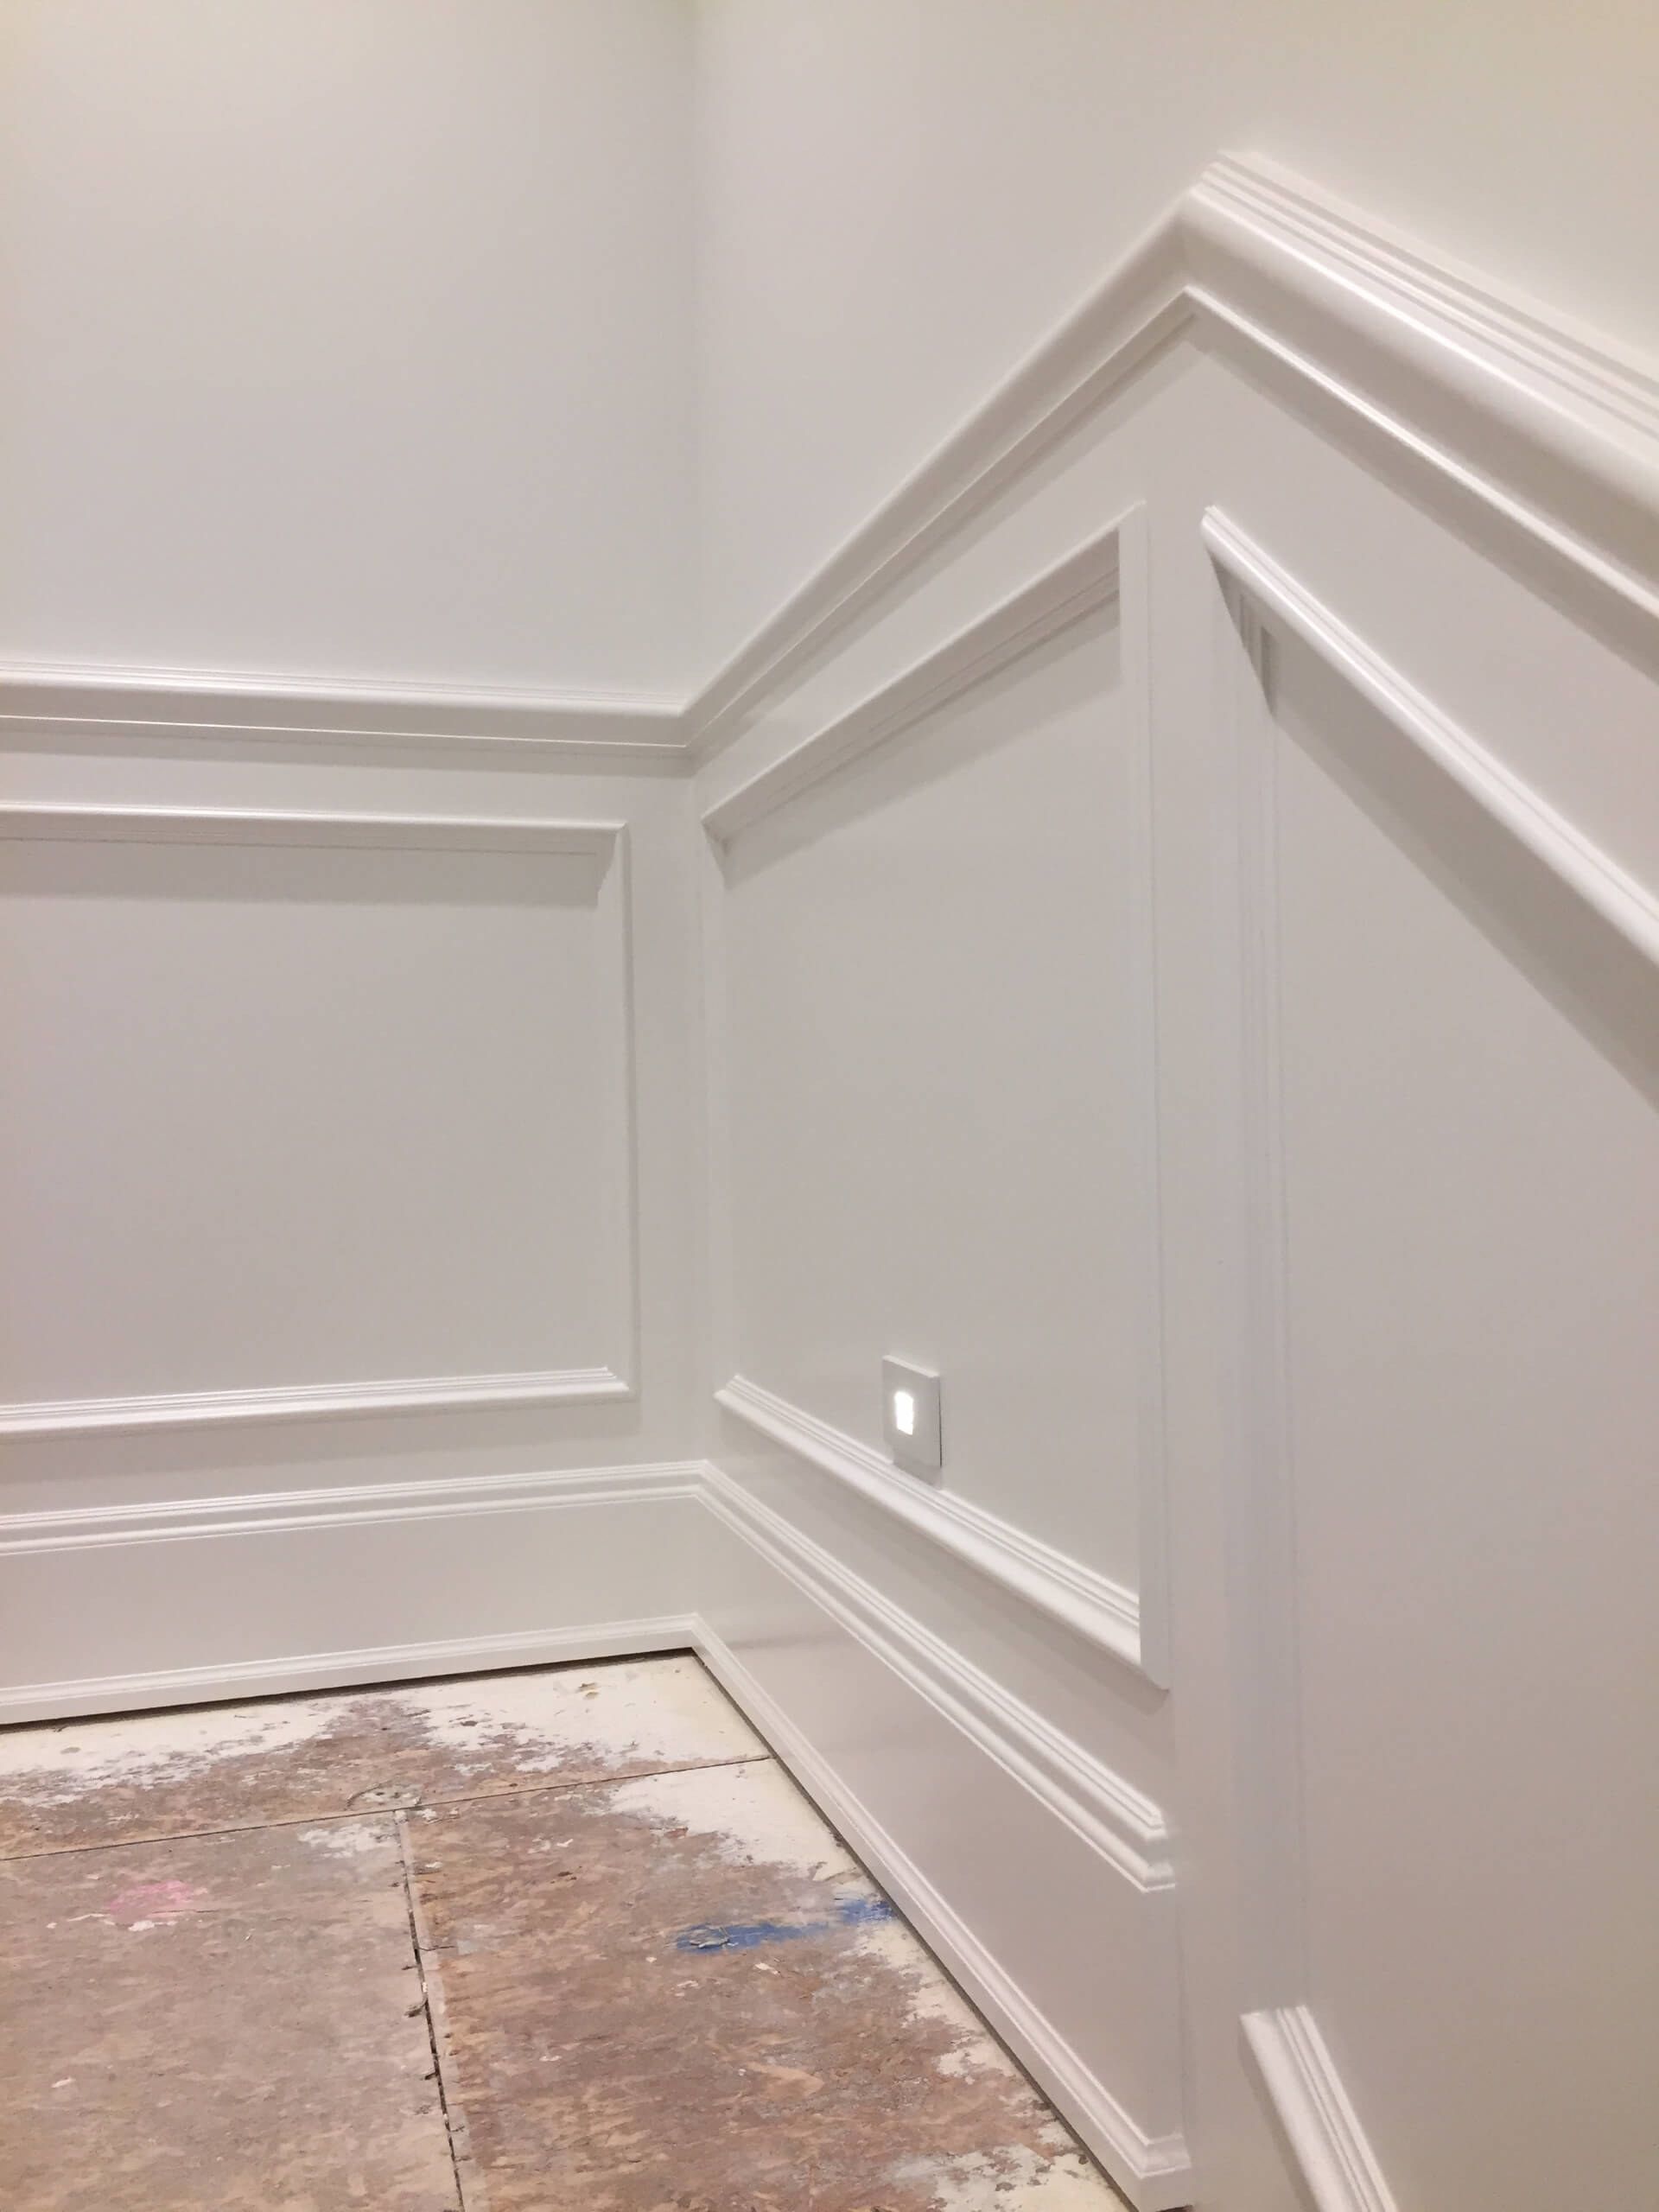 Bellevue painting services